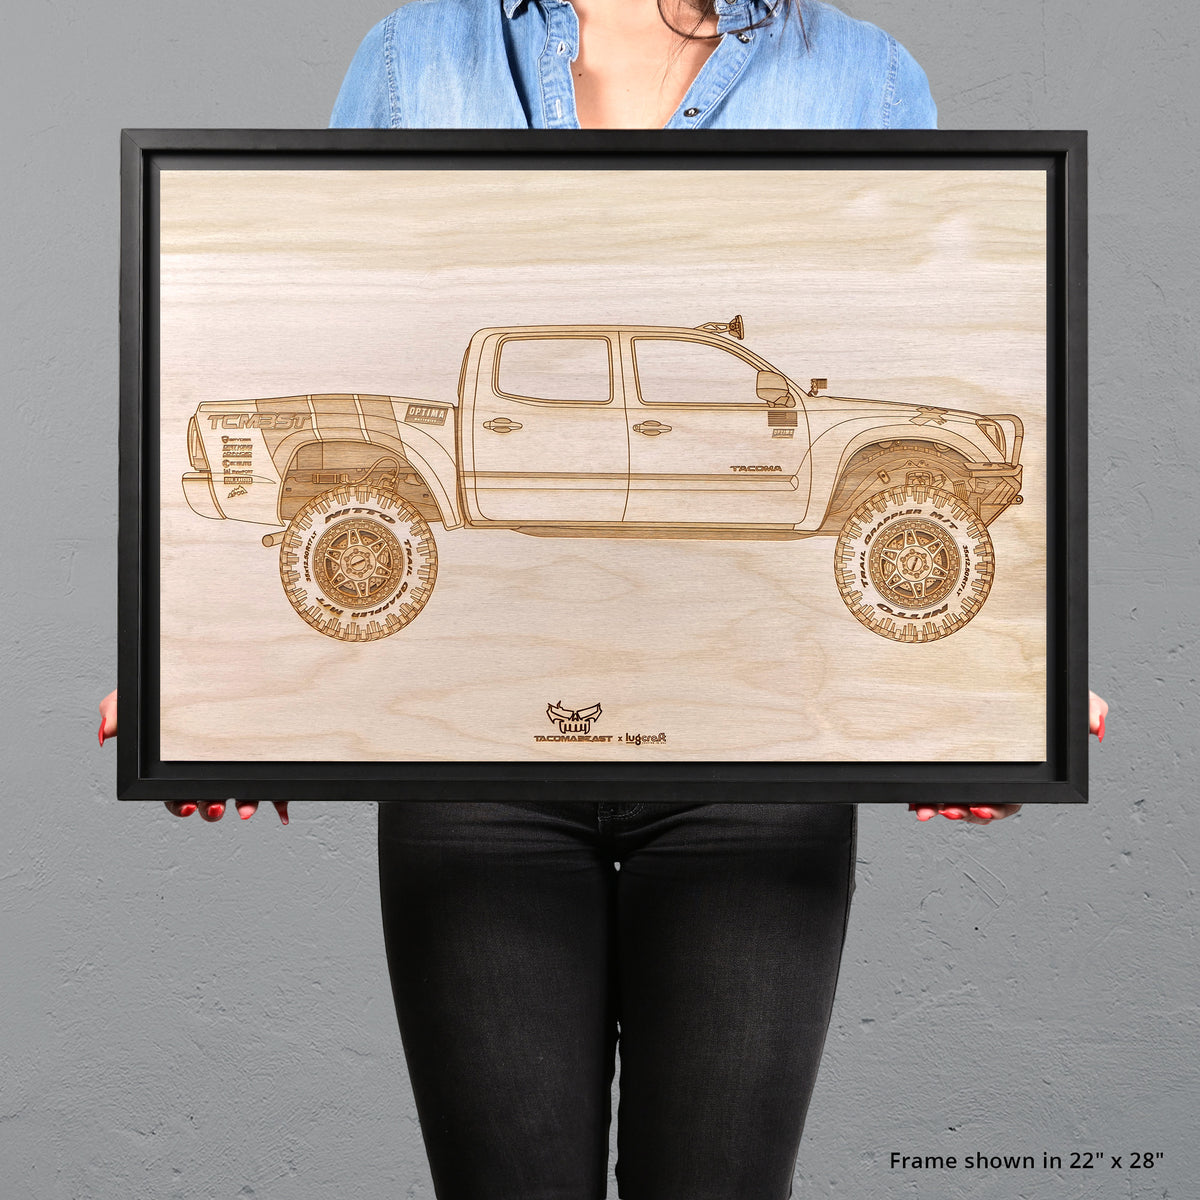 Tacoma Beast Framed Wood Engraved Artwork